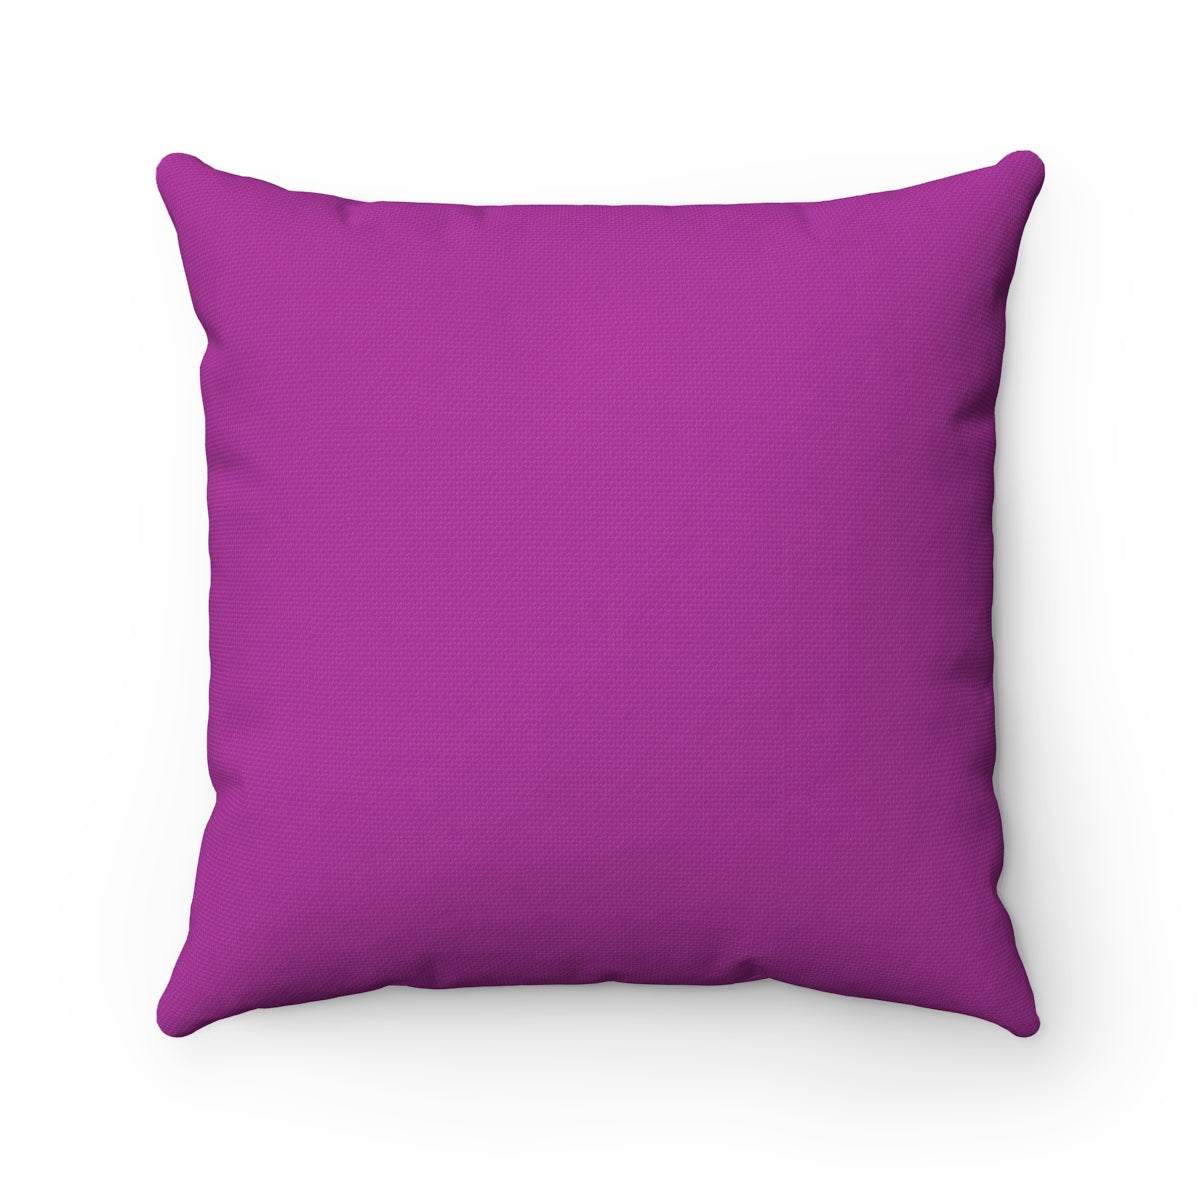 Grover Pillow: Purple